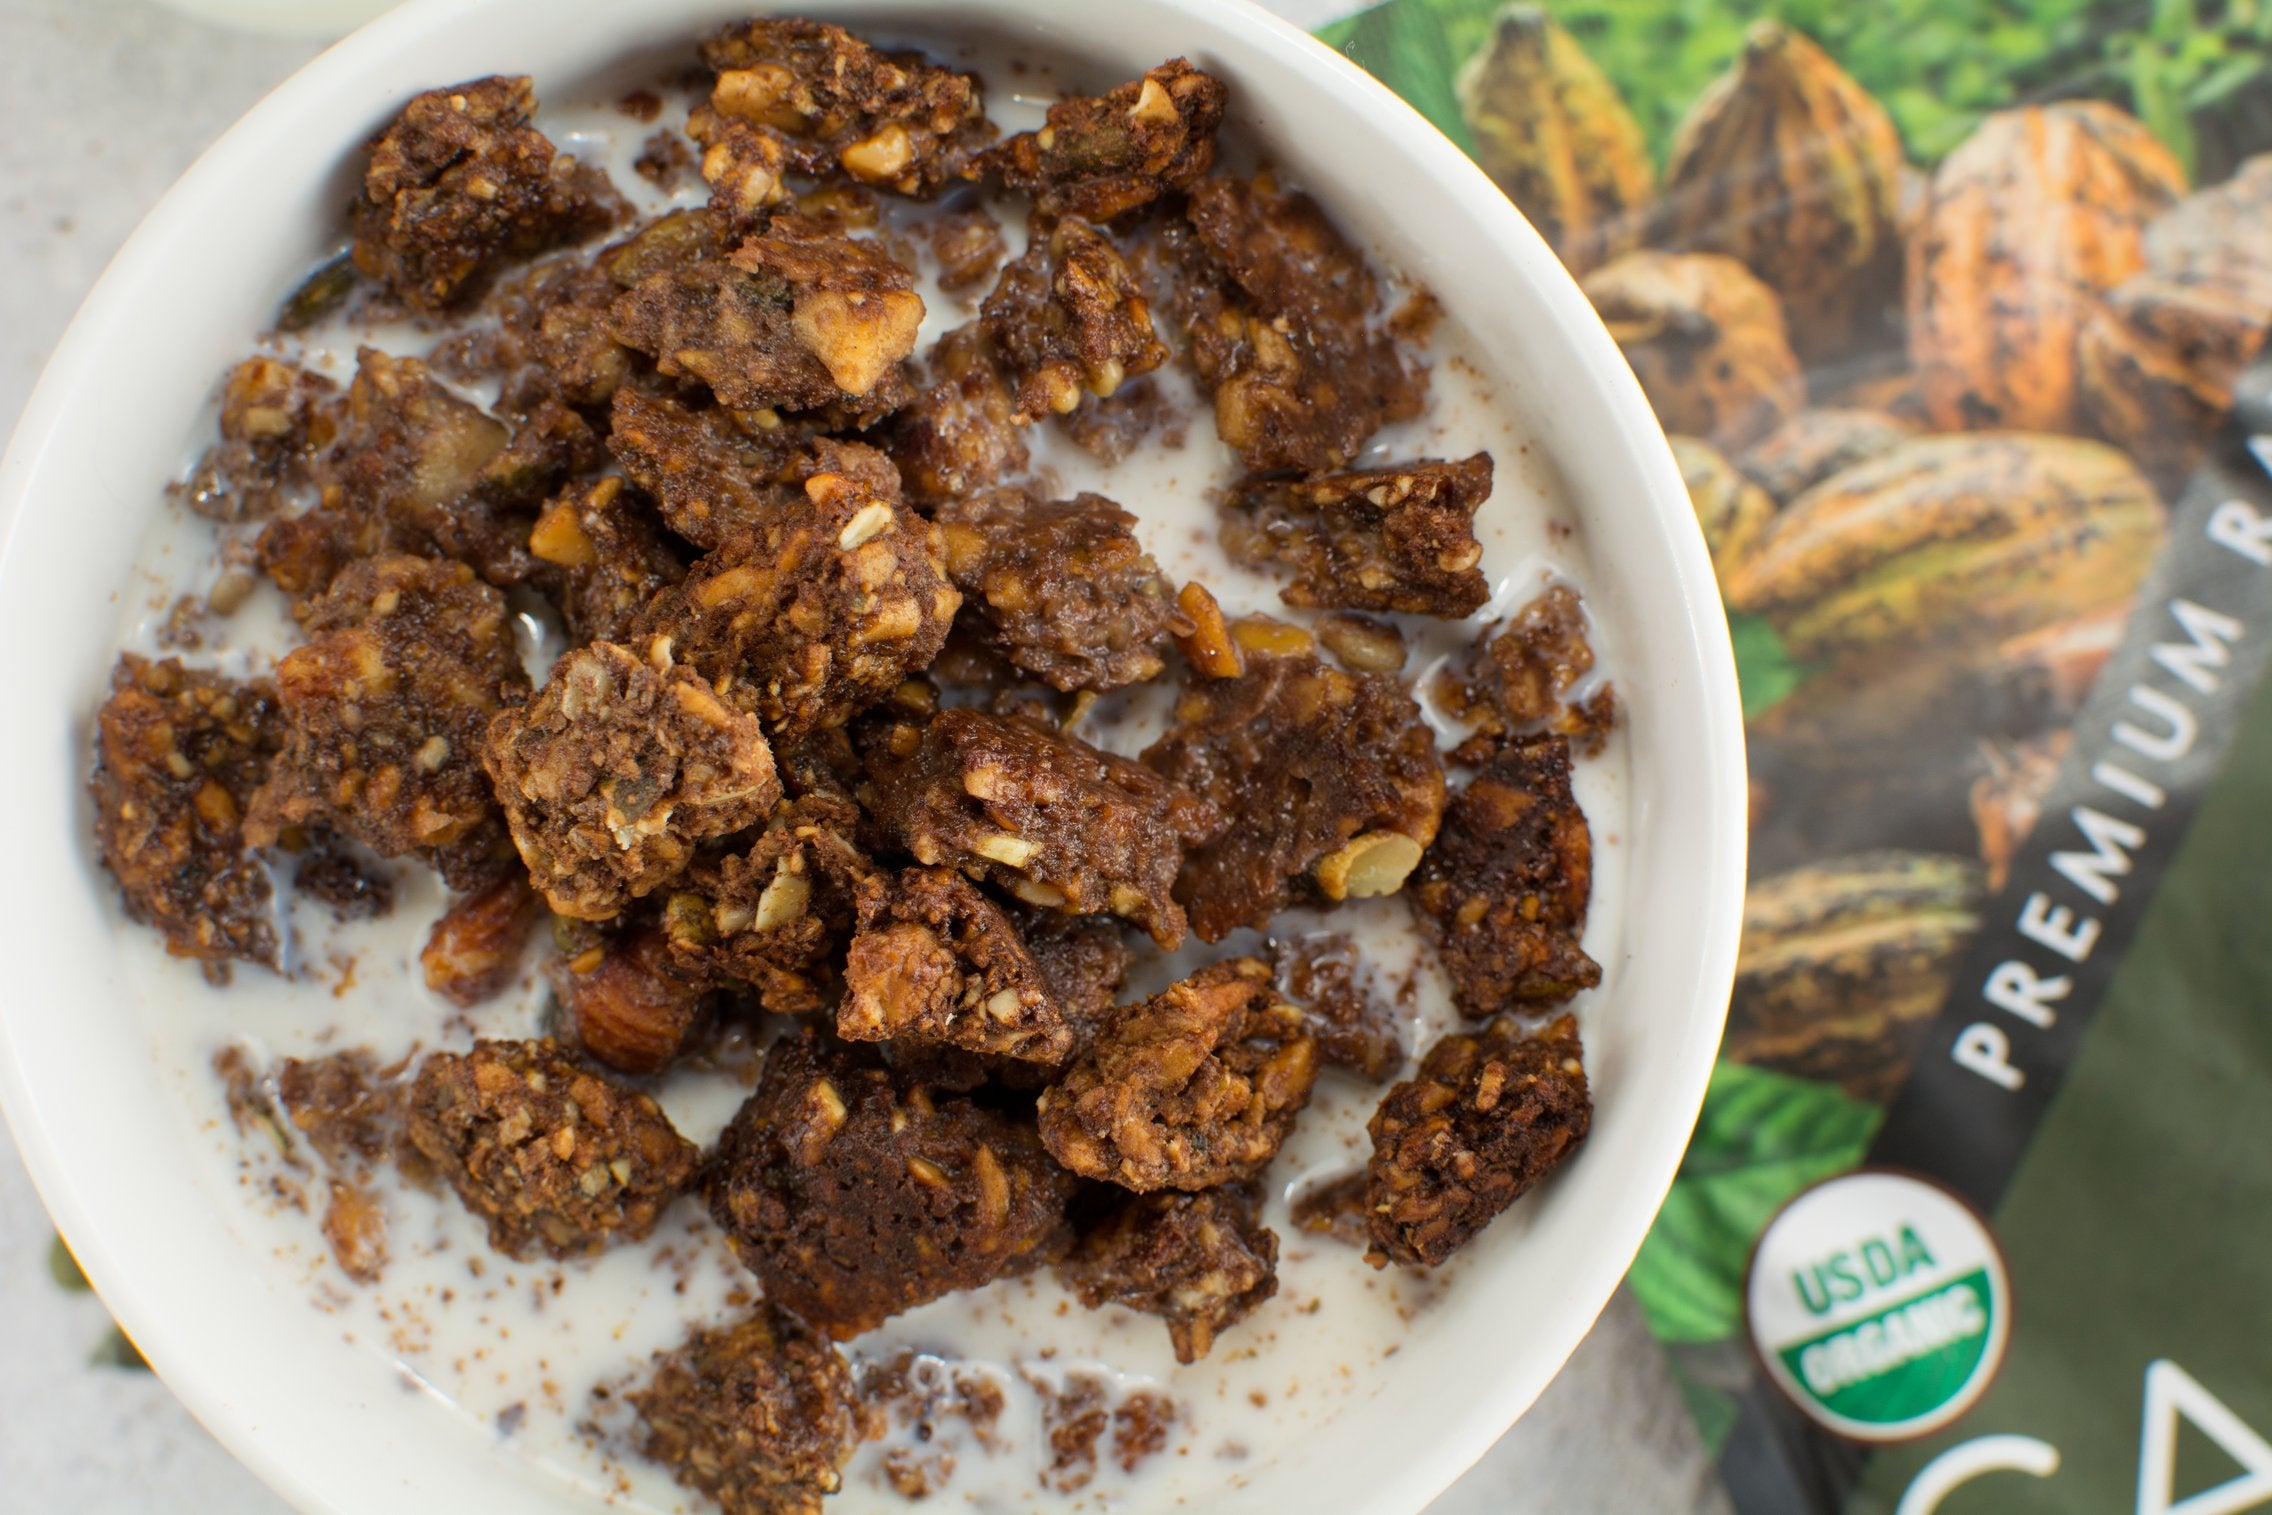 Homemade Gluten-Free Cacao Granola front view